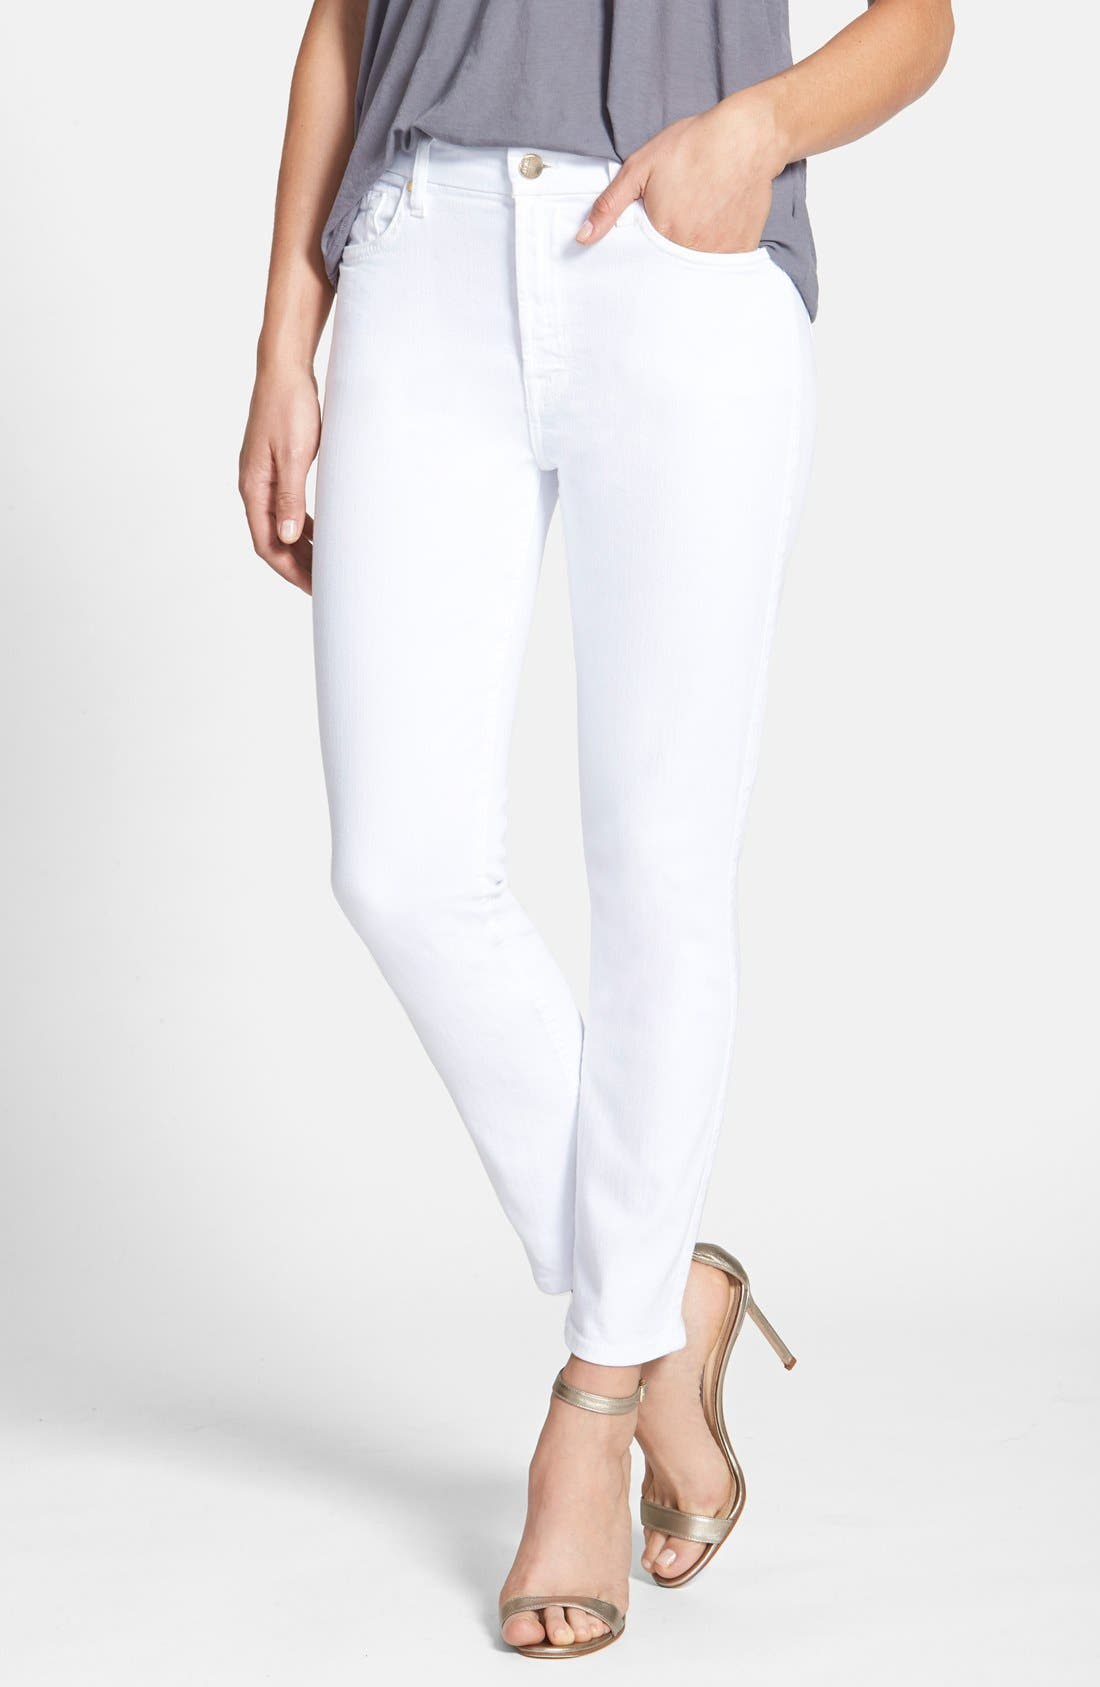 JEN7 Stretch Crop Skinny Jeans in White Denim